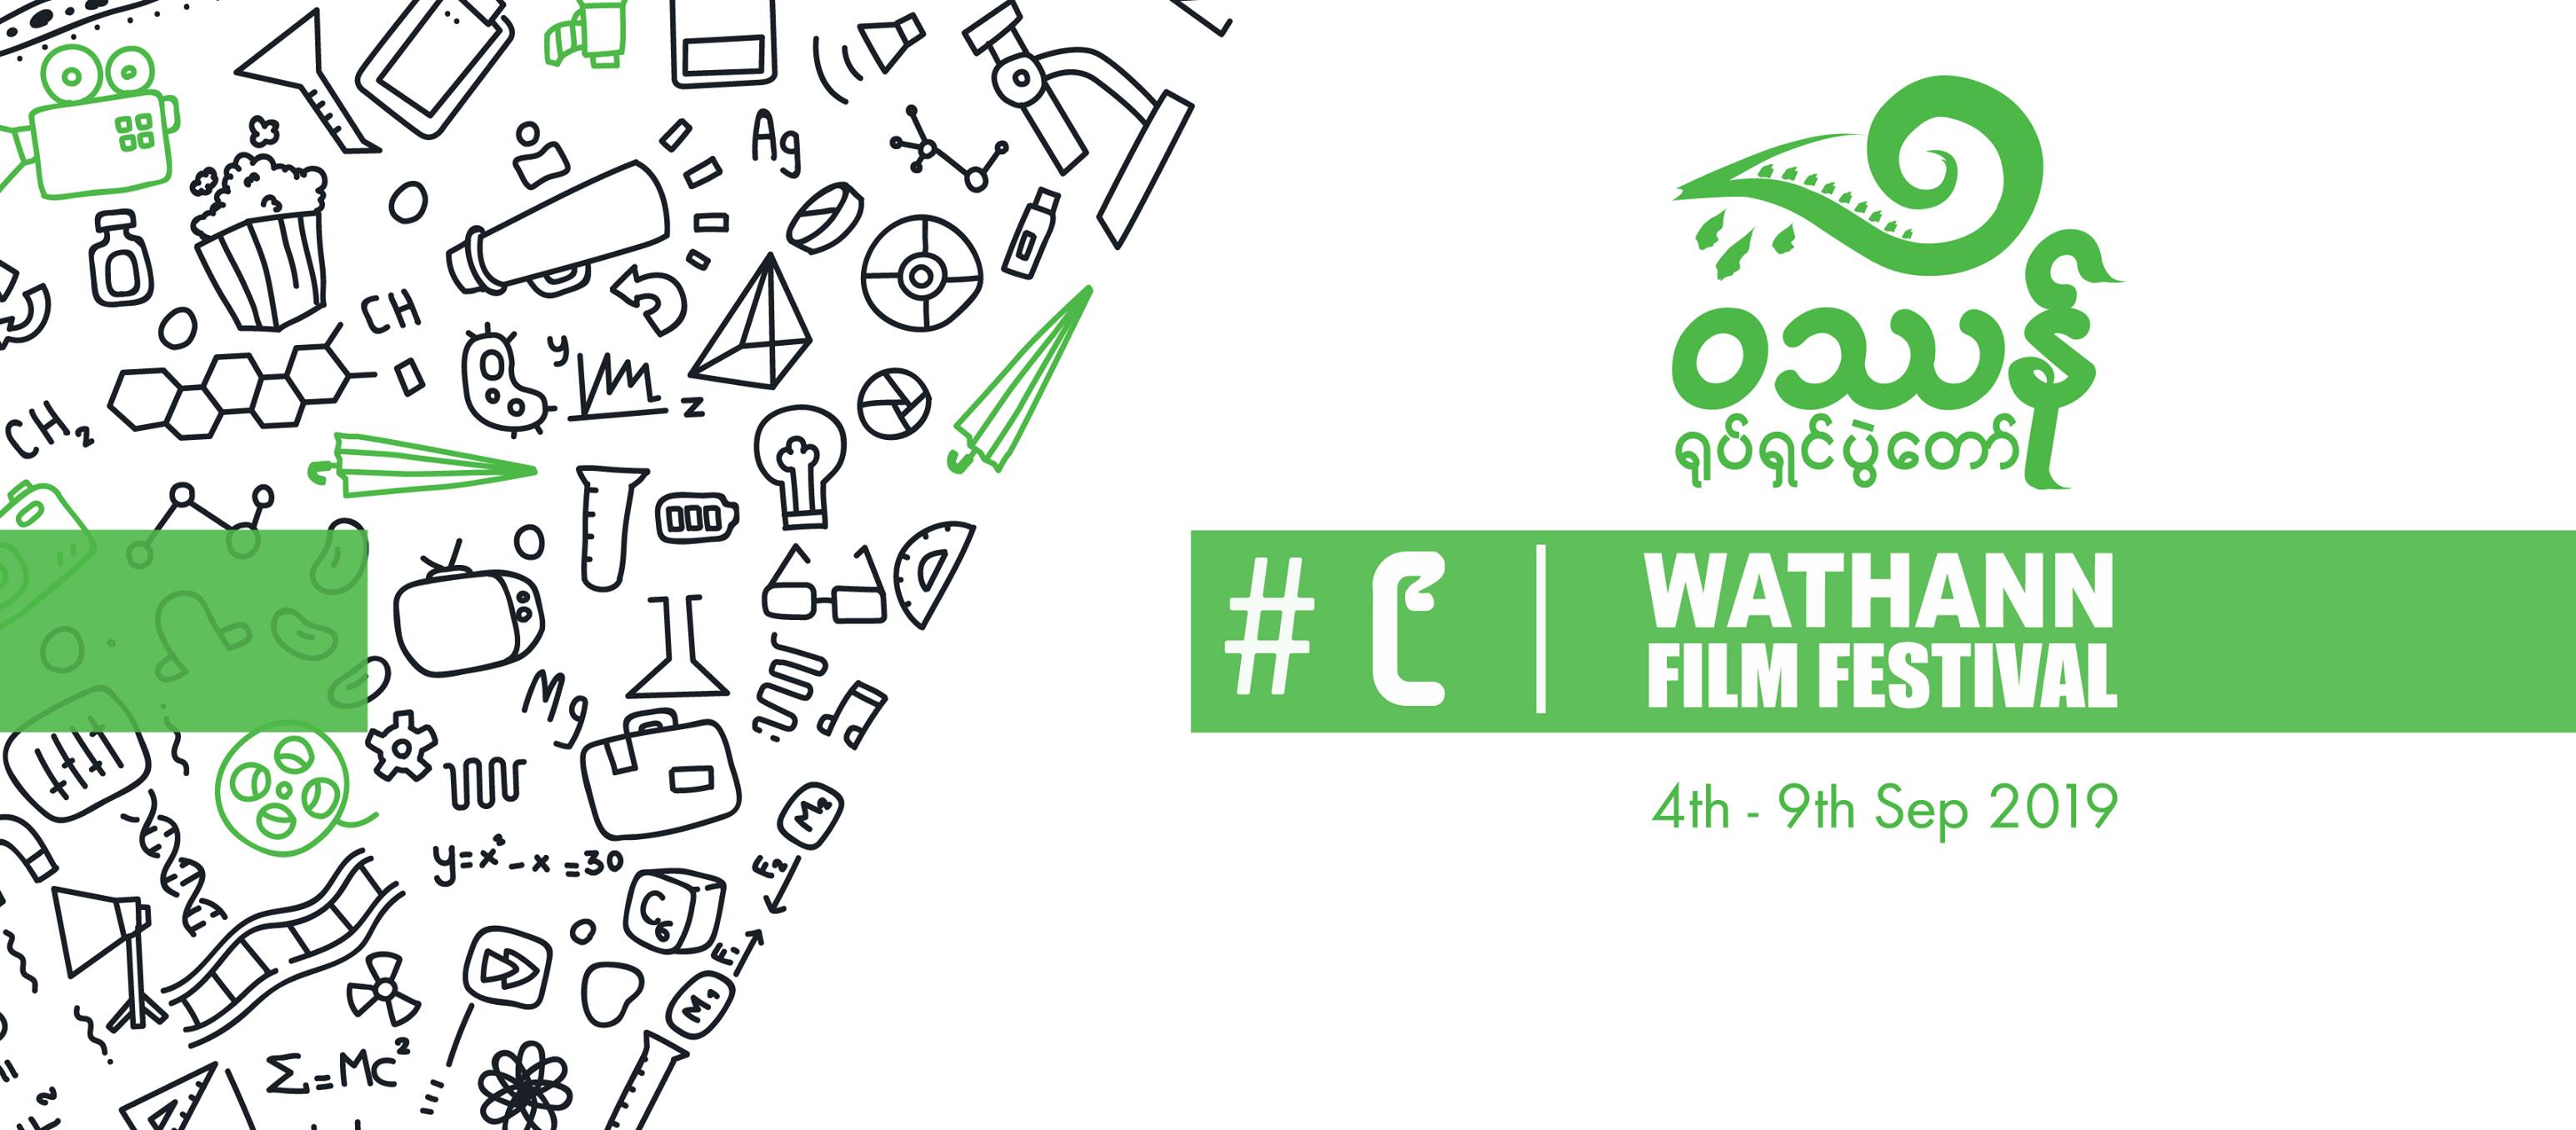 Screening | Wathann Film Festival | Goethe Institut